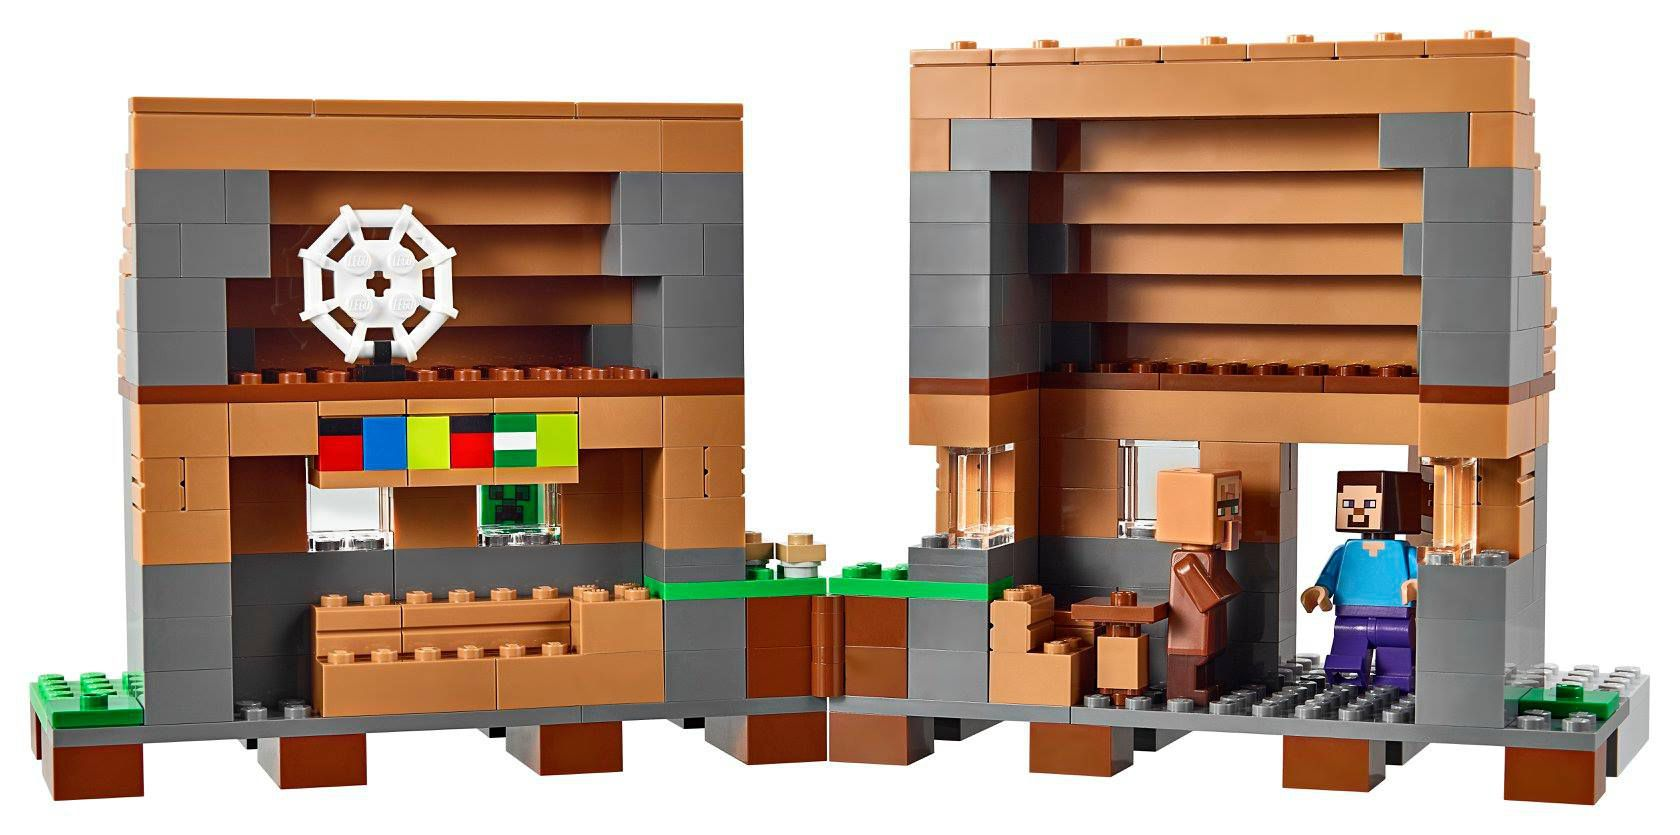 LEGO Minecraft 21128 Das Dorf LEGO-Minecraft-21128-The-Village_img08.jpg